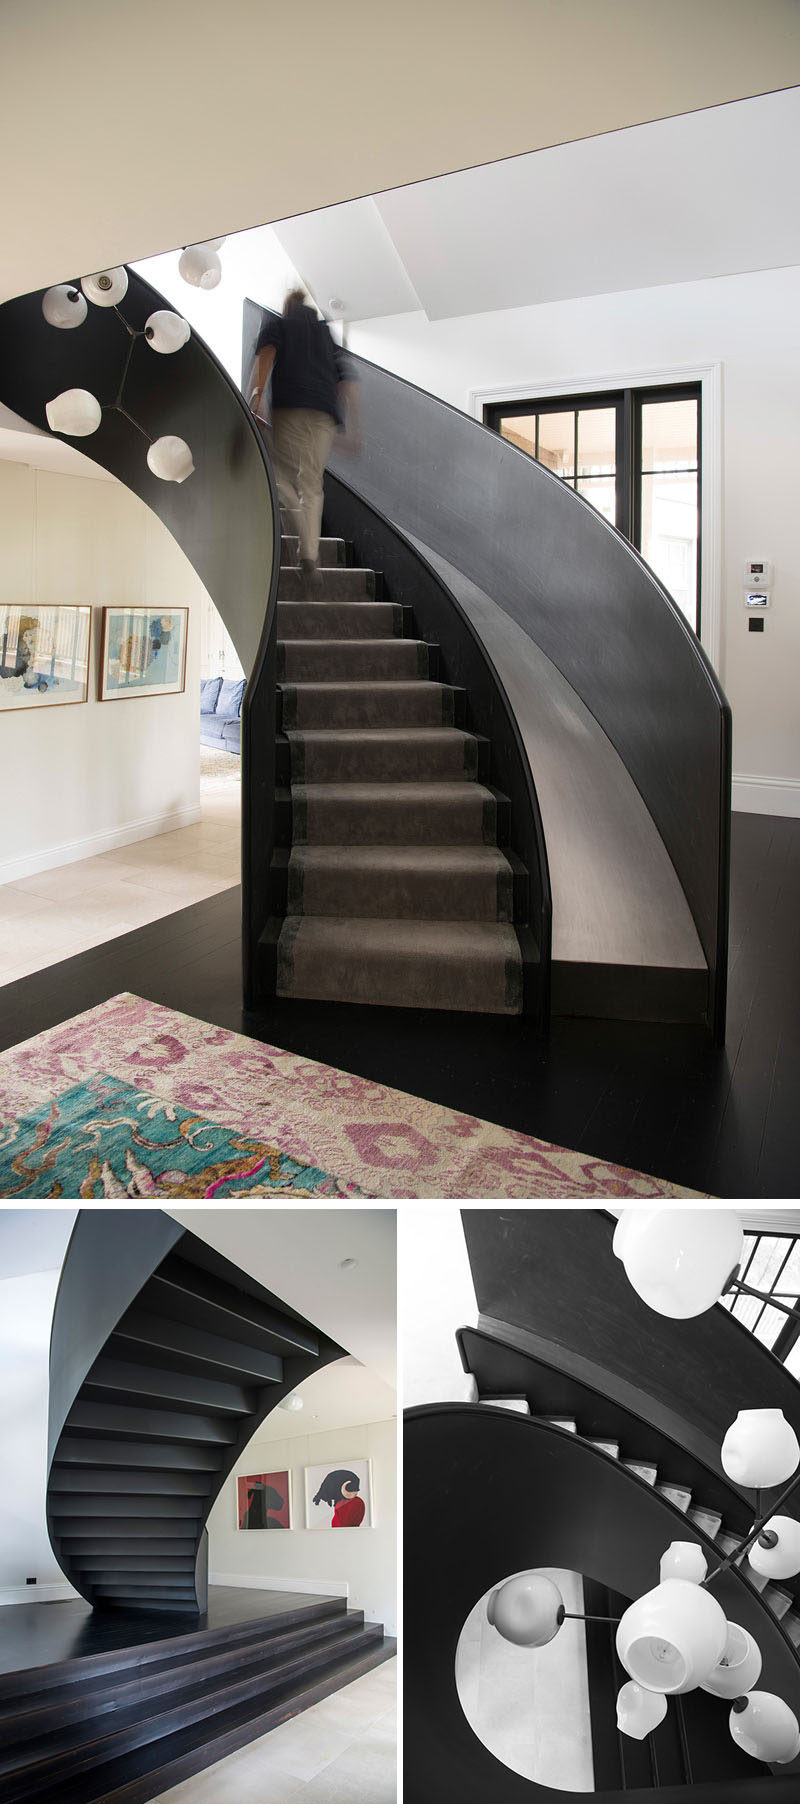 This modern house has a curved steel staircase with a slide that connects the main floor with the upper level, that's home to the kids' bedrooms and a rumpus / playroom. #Stairs #StairsWithSlide #Staircase